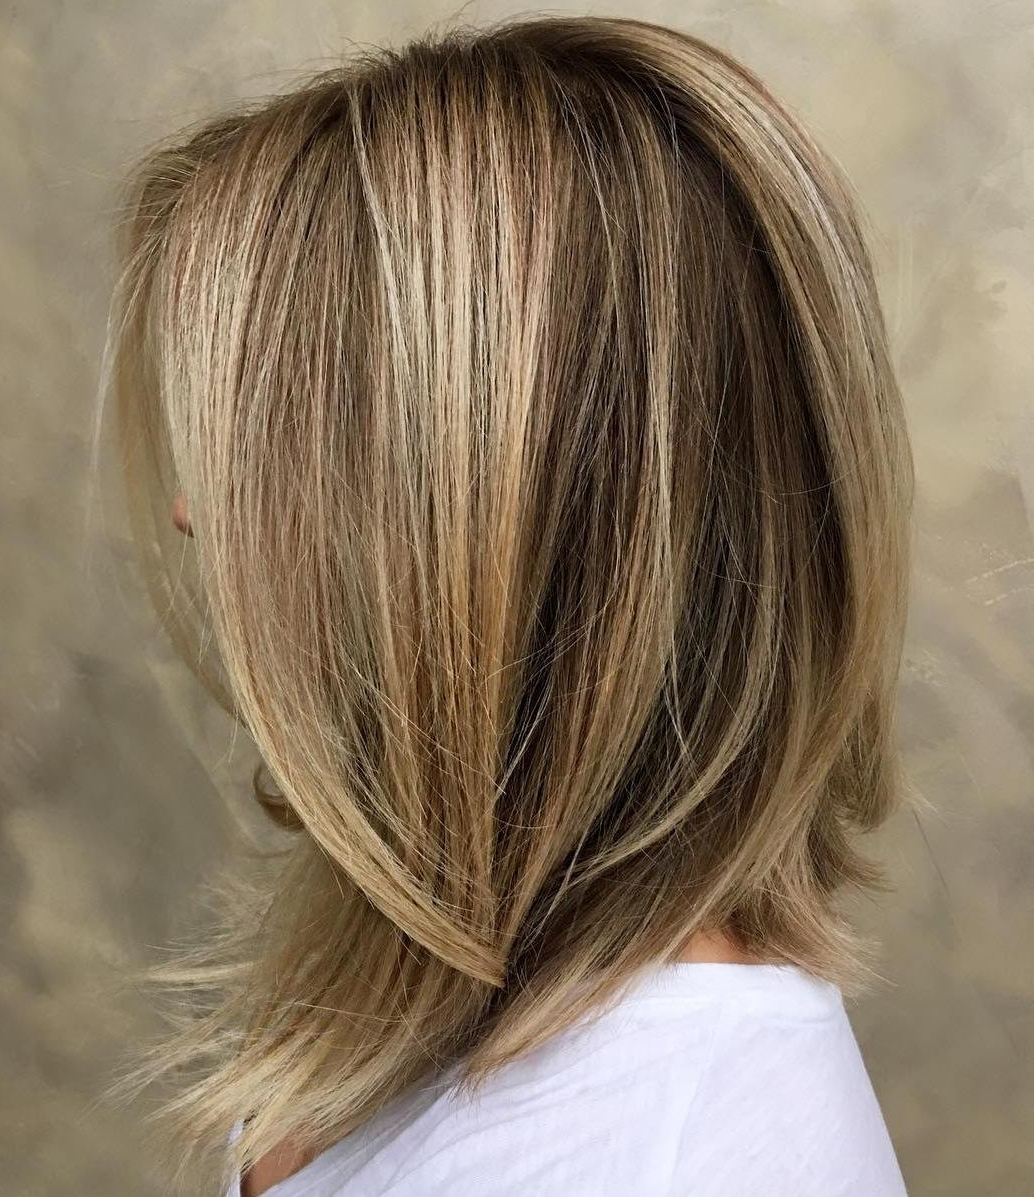 Trendy Bronde Bob With Highlighted Bangs Pertaining To 60 Inspiring Long Bob Hairstyles And Lob Haircuts (View 19 of 20)